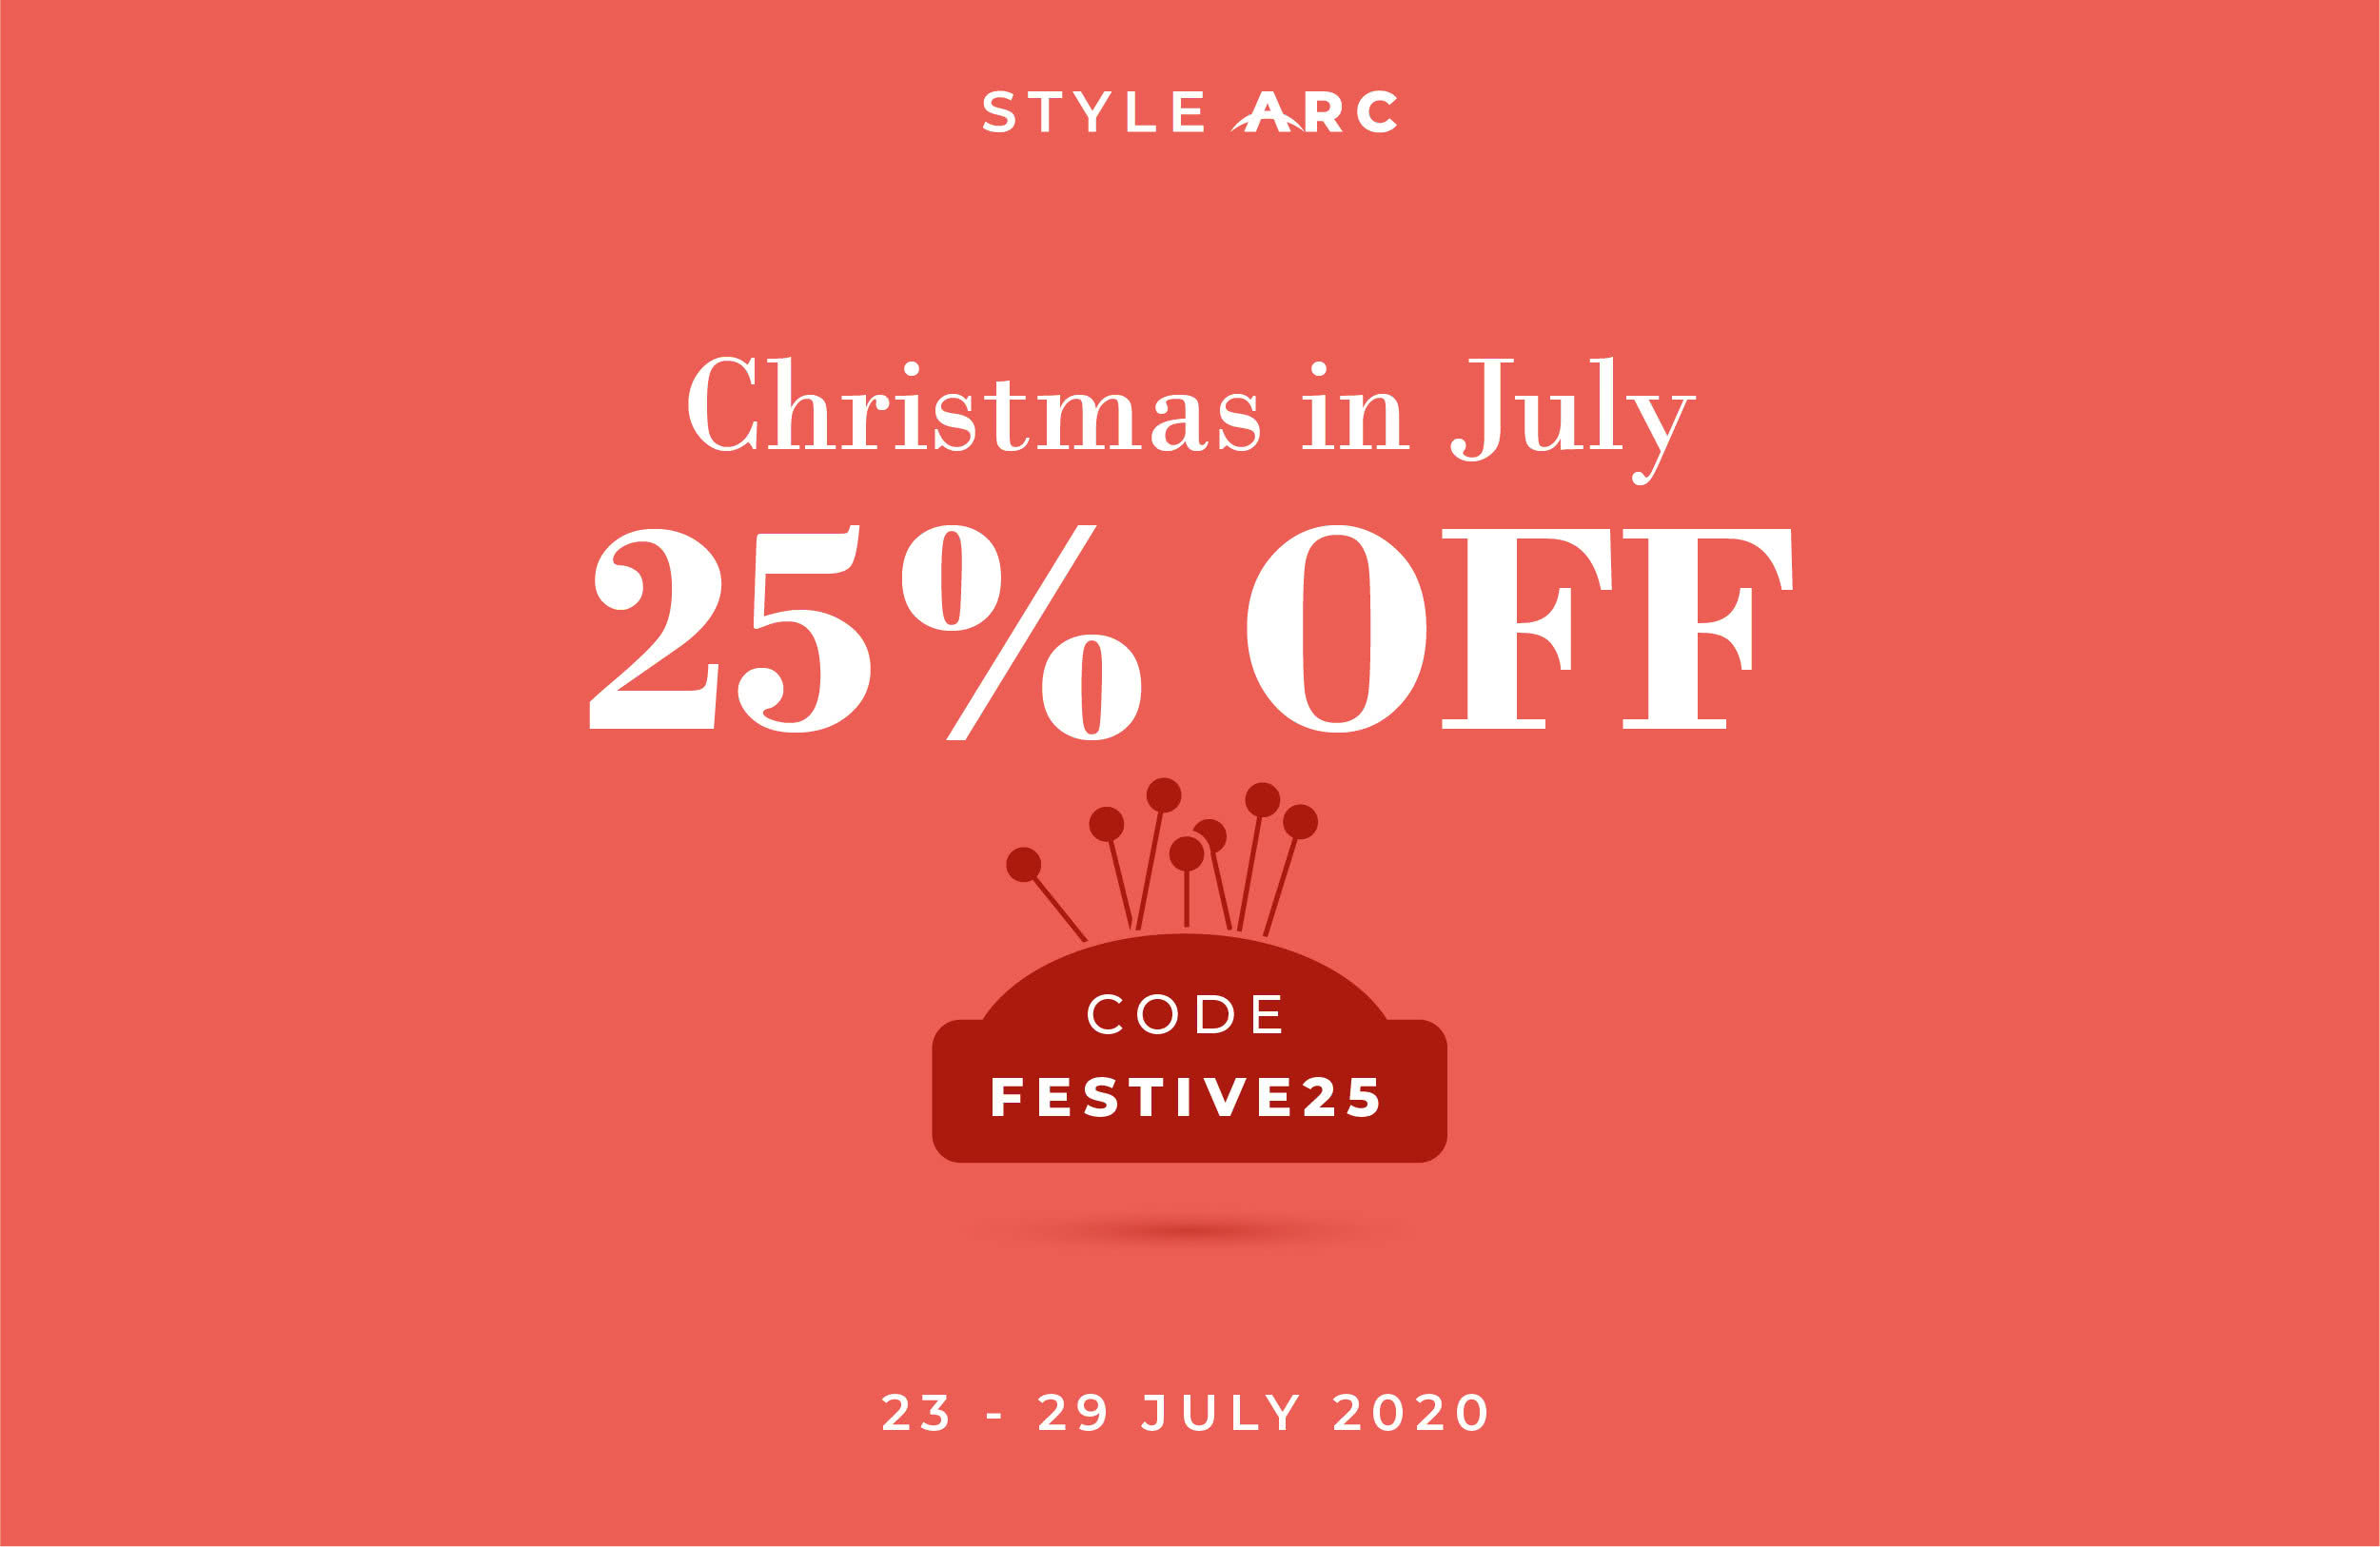 Christmas in July 2020 - Coupon code: FESTIVE25 on our Site and Etsy